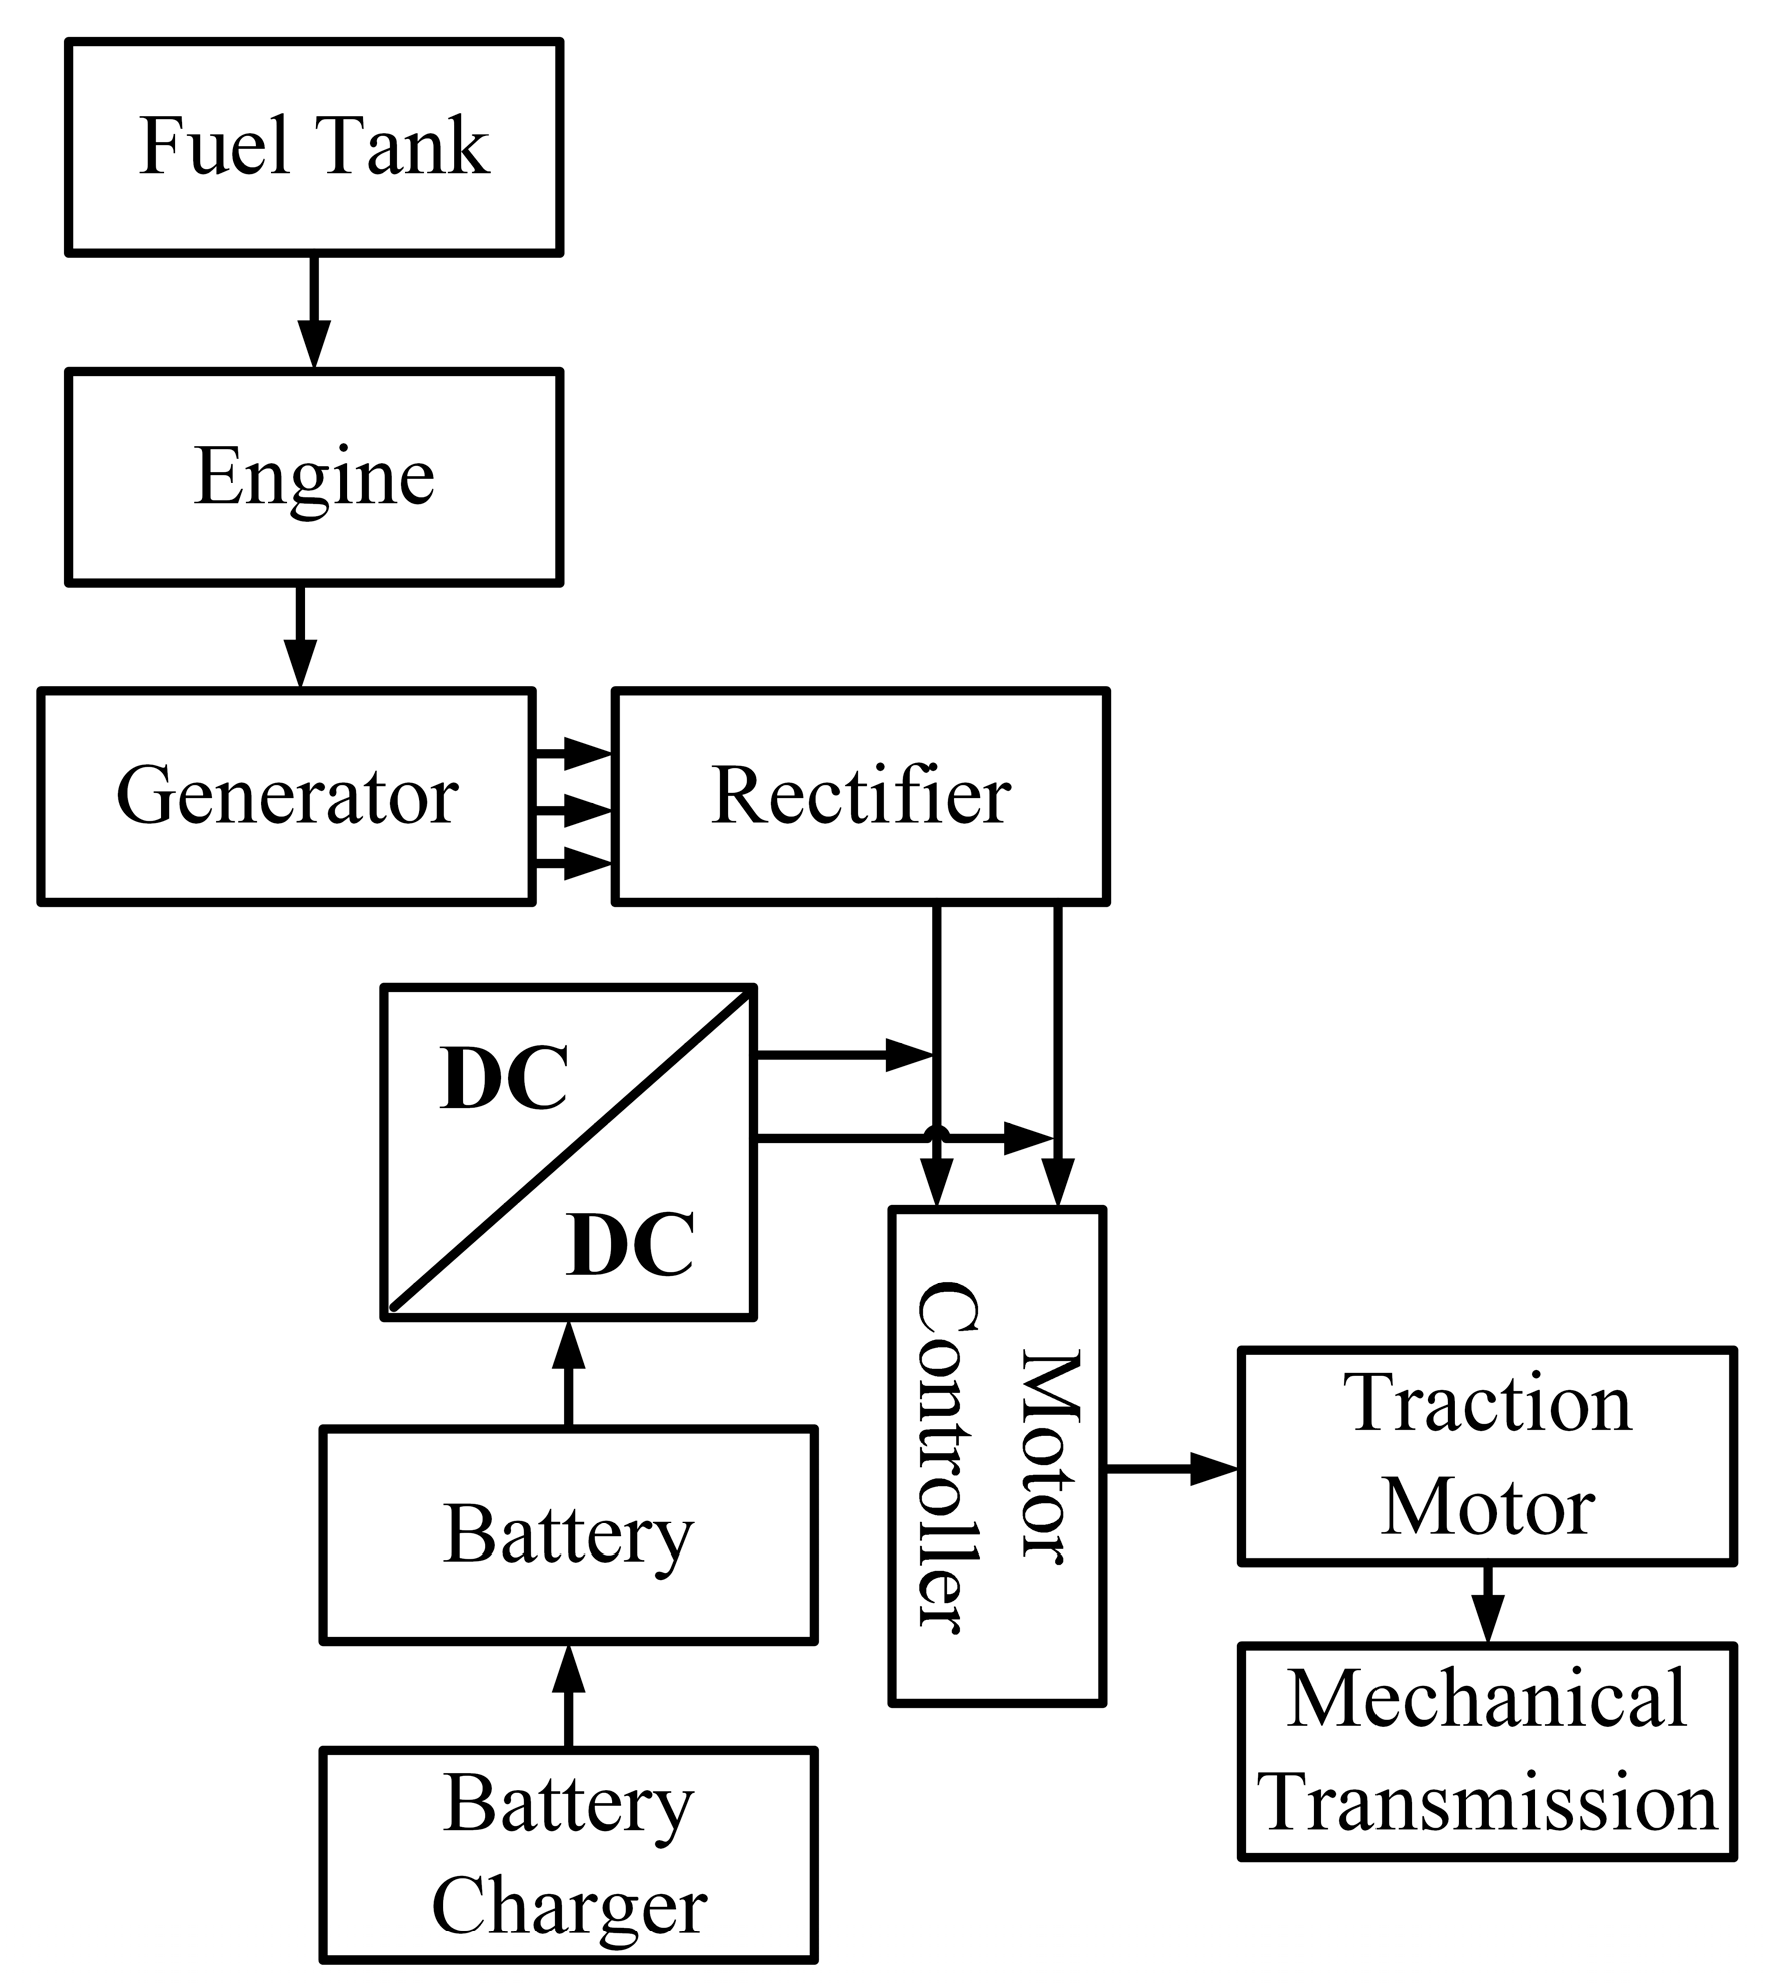 Series Hybrid Electric Vehicle furthermore US7808214 together with A Diagram For Electric Car Drivetrain likewise Do Hybrid And Electric Vehicles Have The Pulling Power as well US8011461. on hybrid vehicle drivetrain